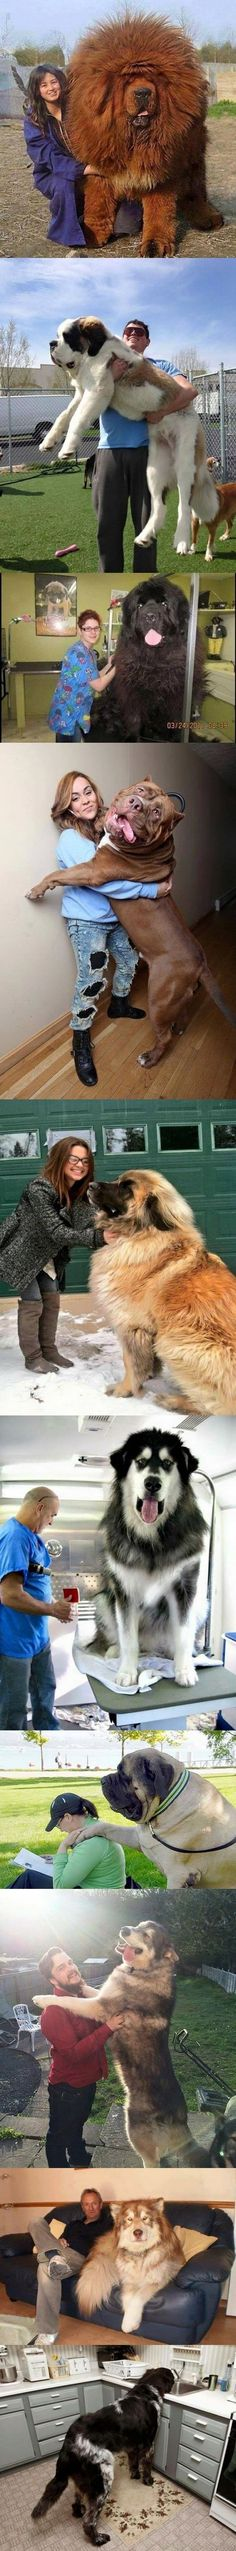 Biggest dogs in the world #dogsfunnytumblr